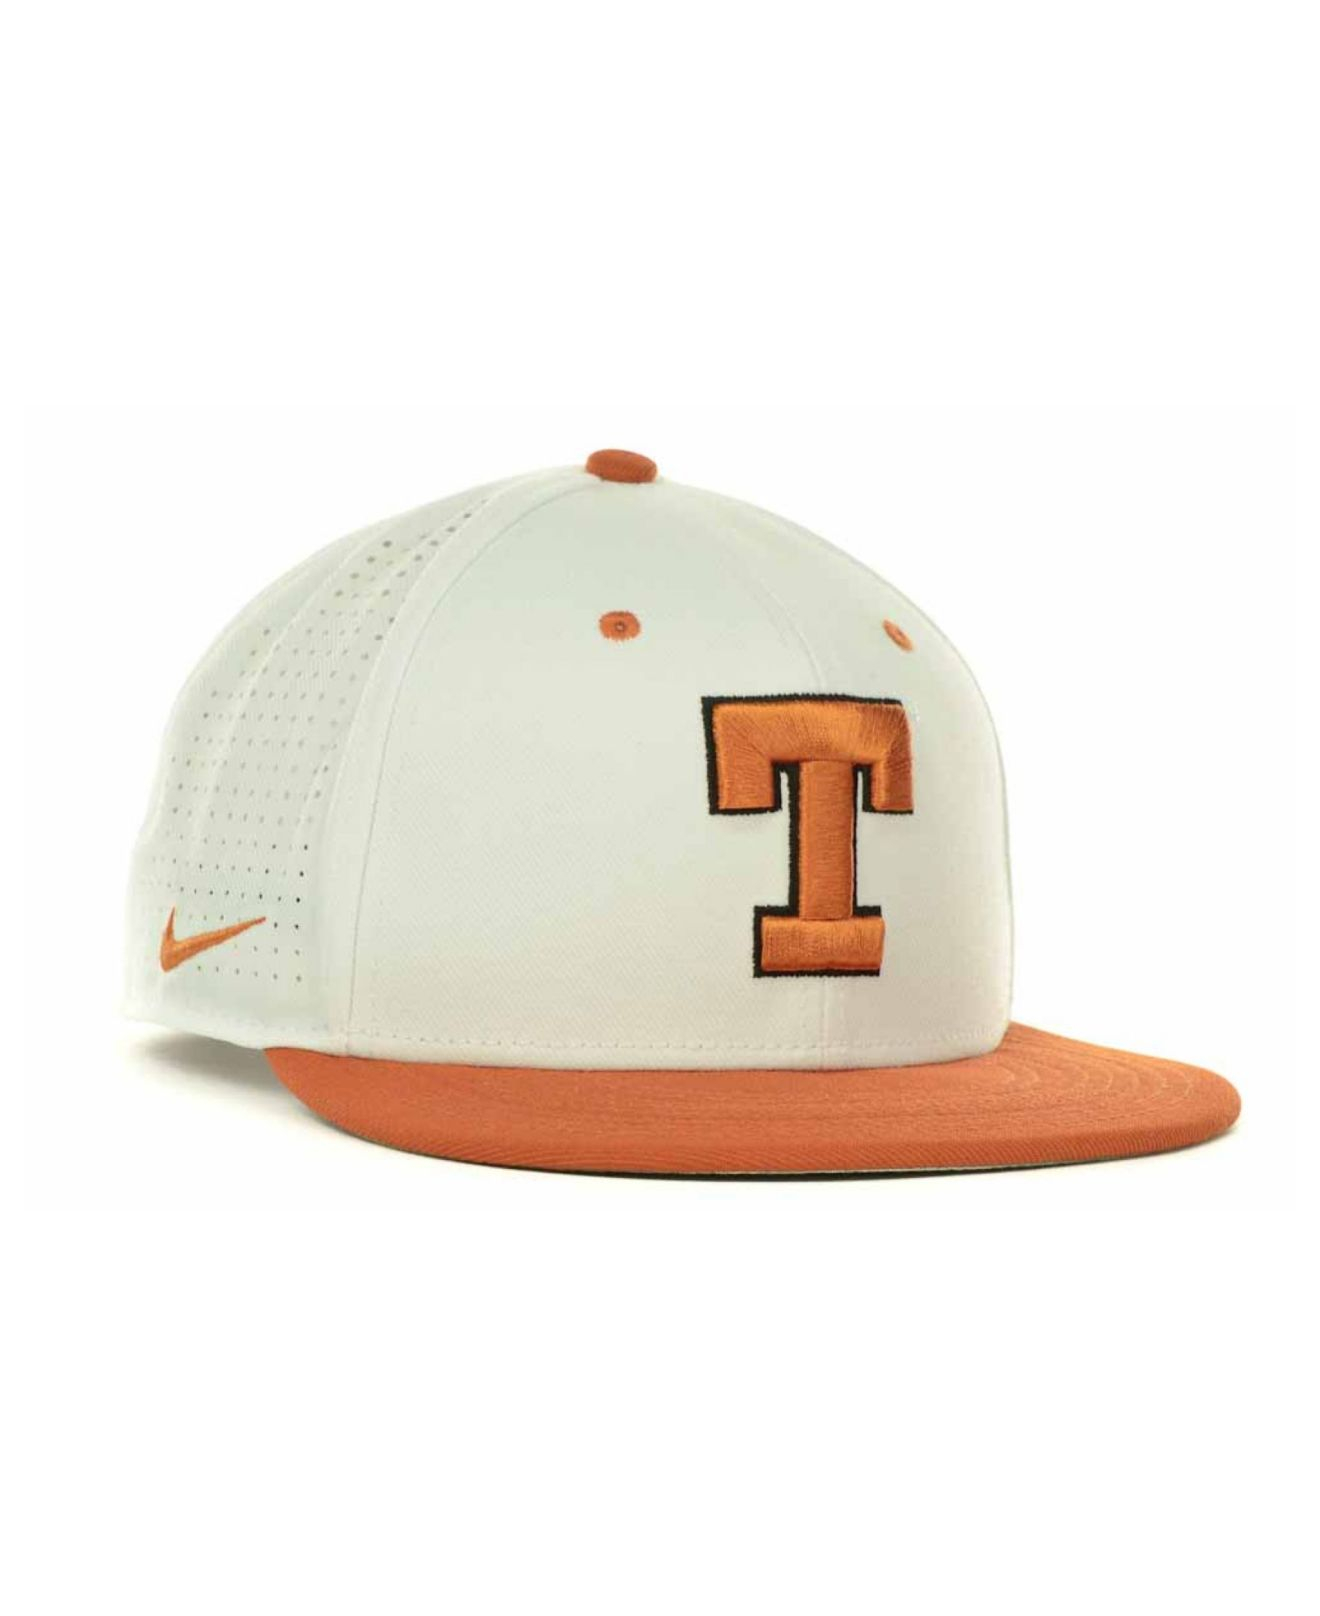 664194016da ... snapback adjustable hat fc35f 4815d  new arrivals lyst nike texas  longhorns ncaa authentic vapor fitted cap in white 1c5a6 2f4d2